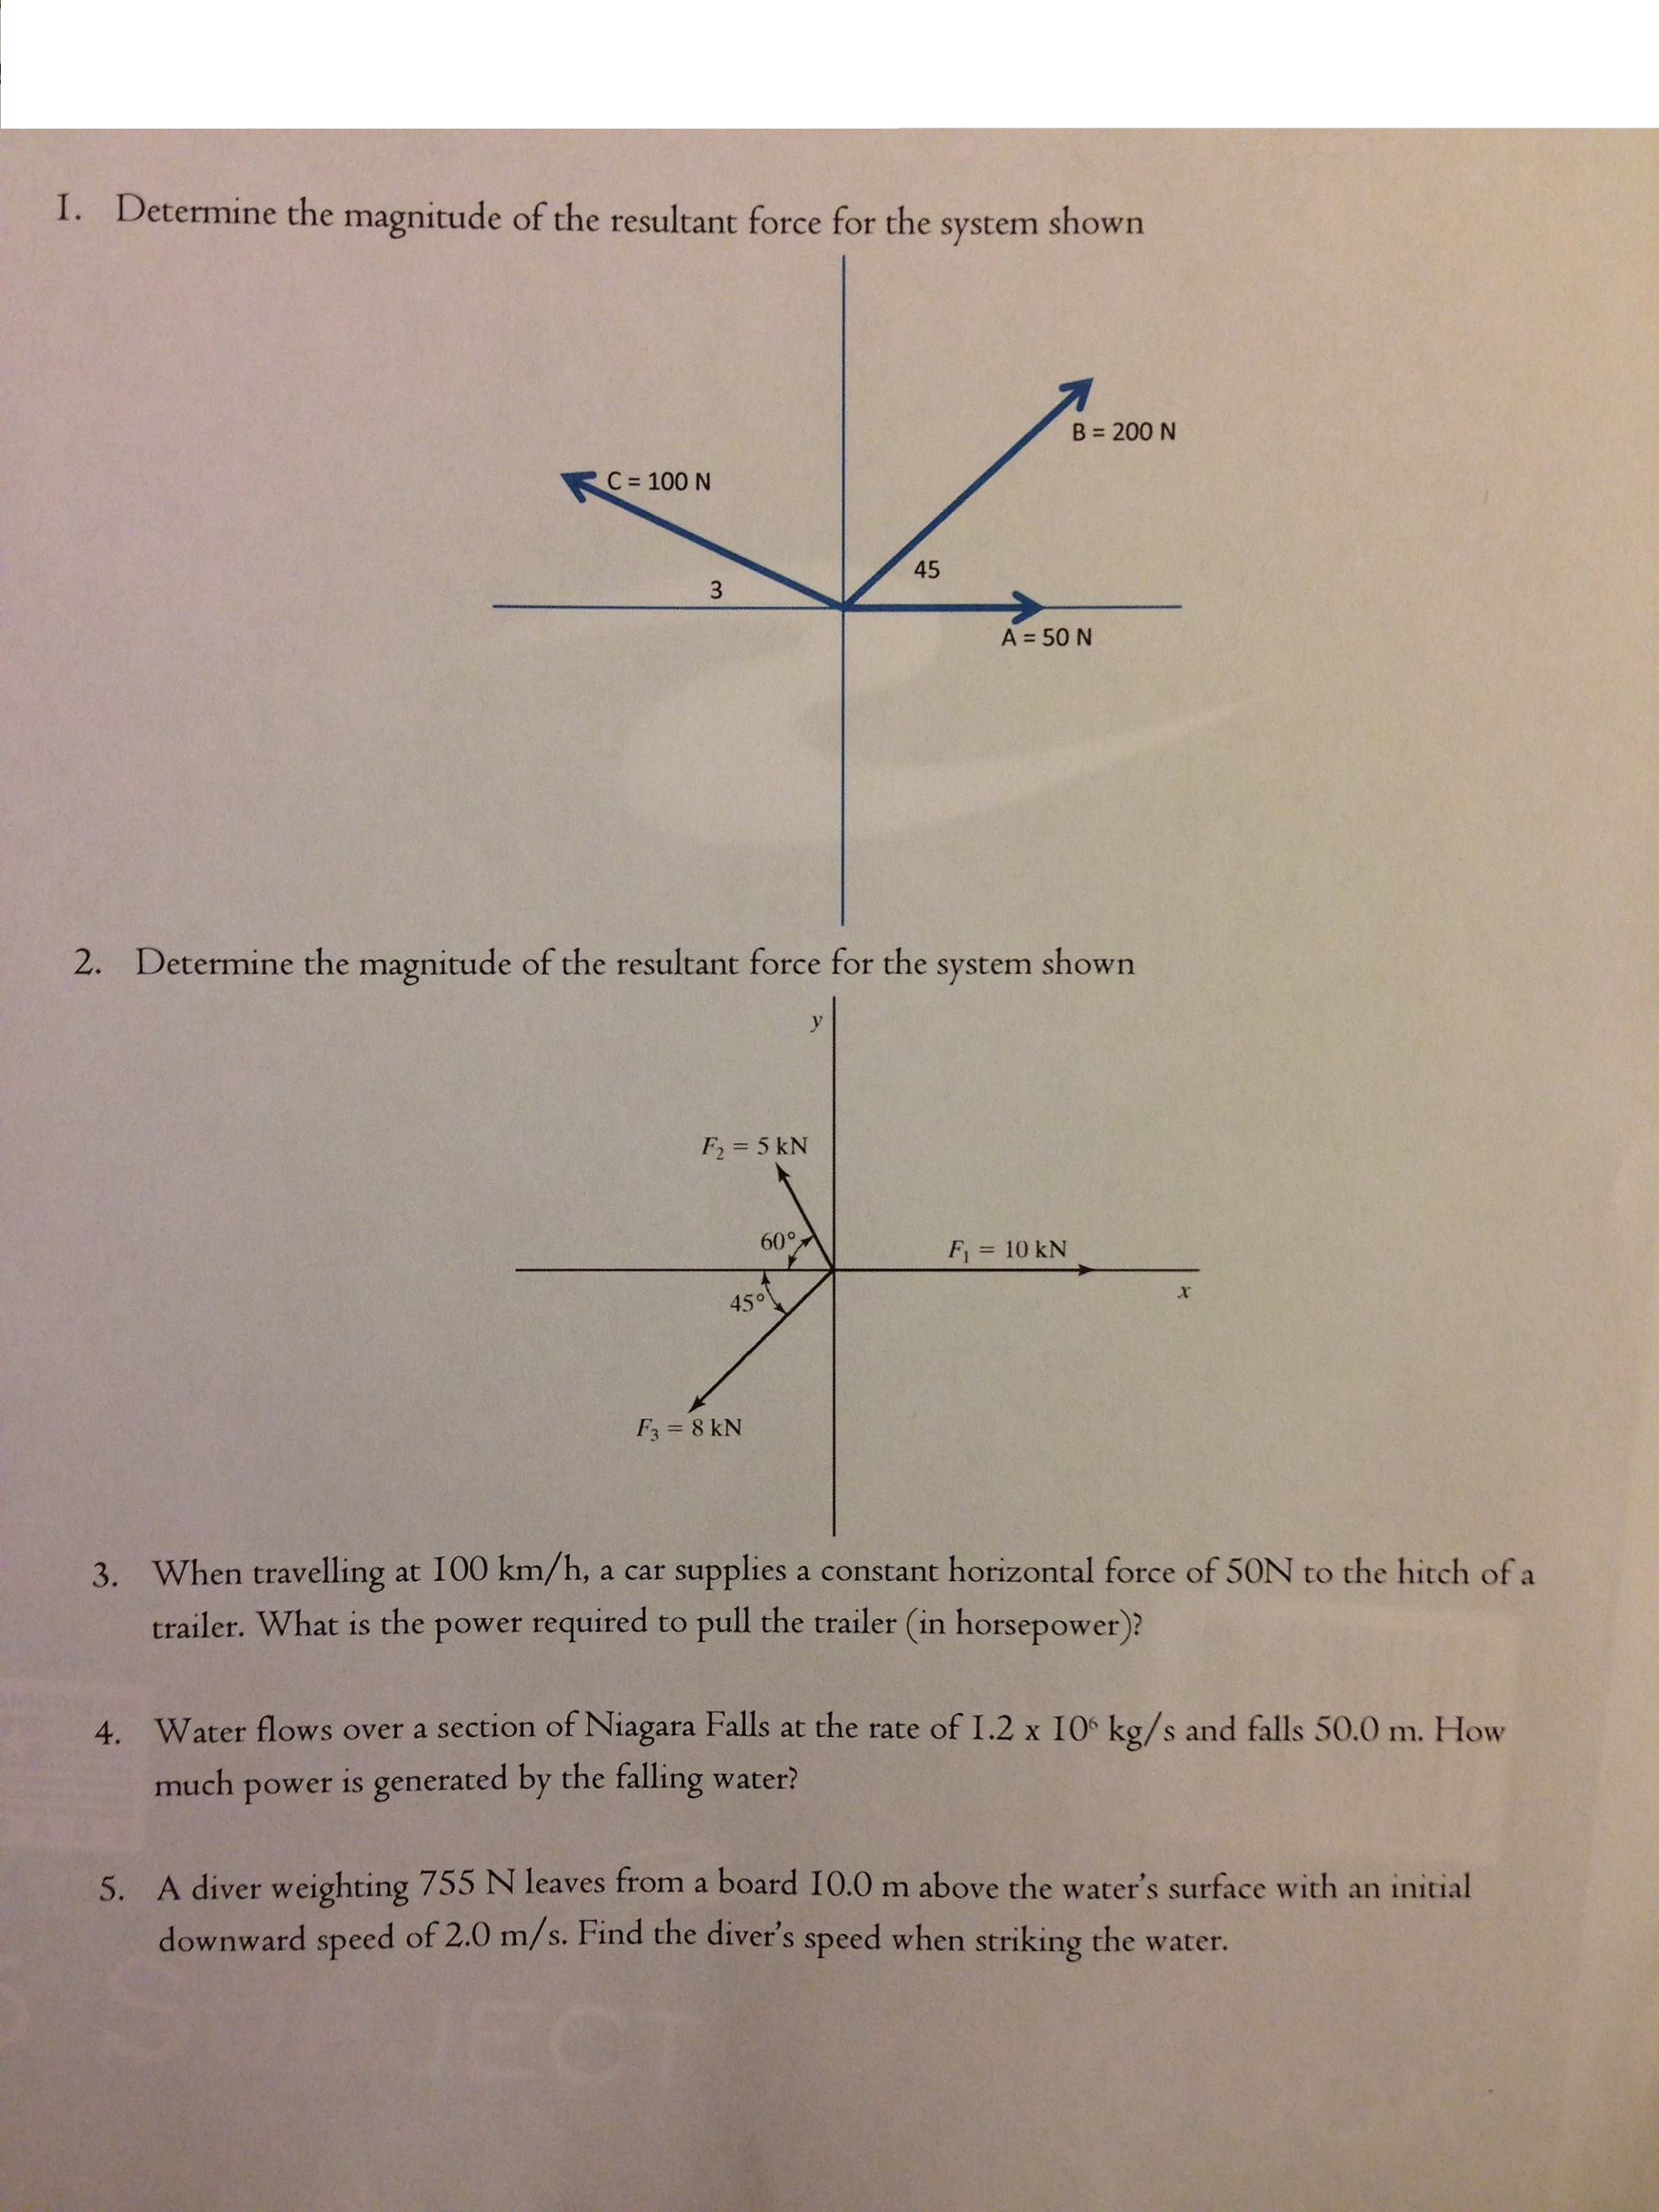 Determine the magnitude of the resultant force for